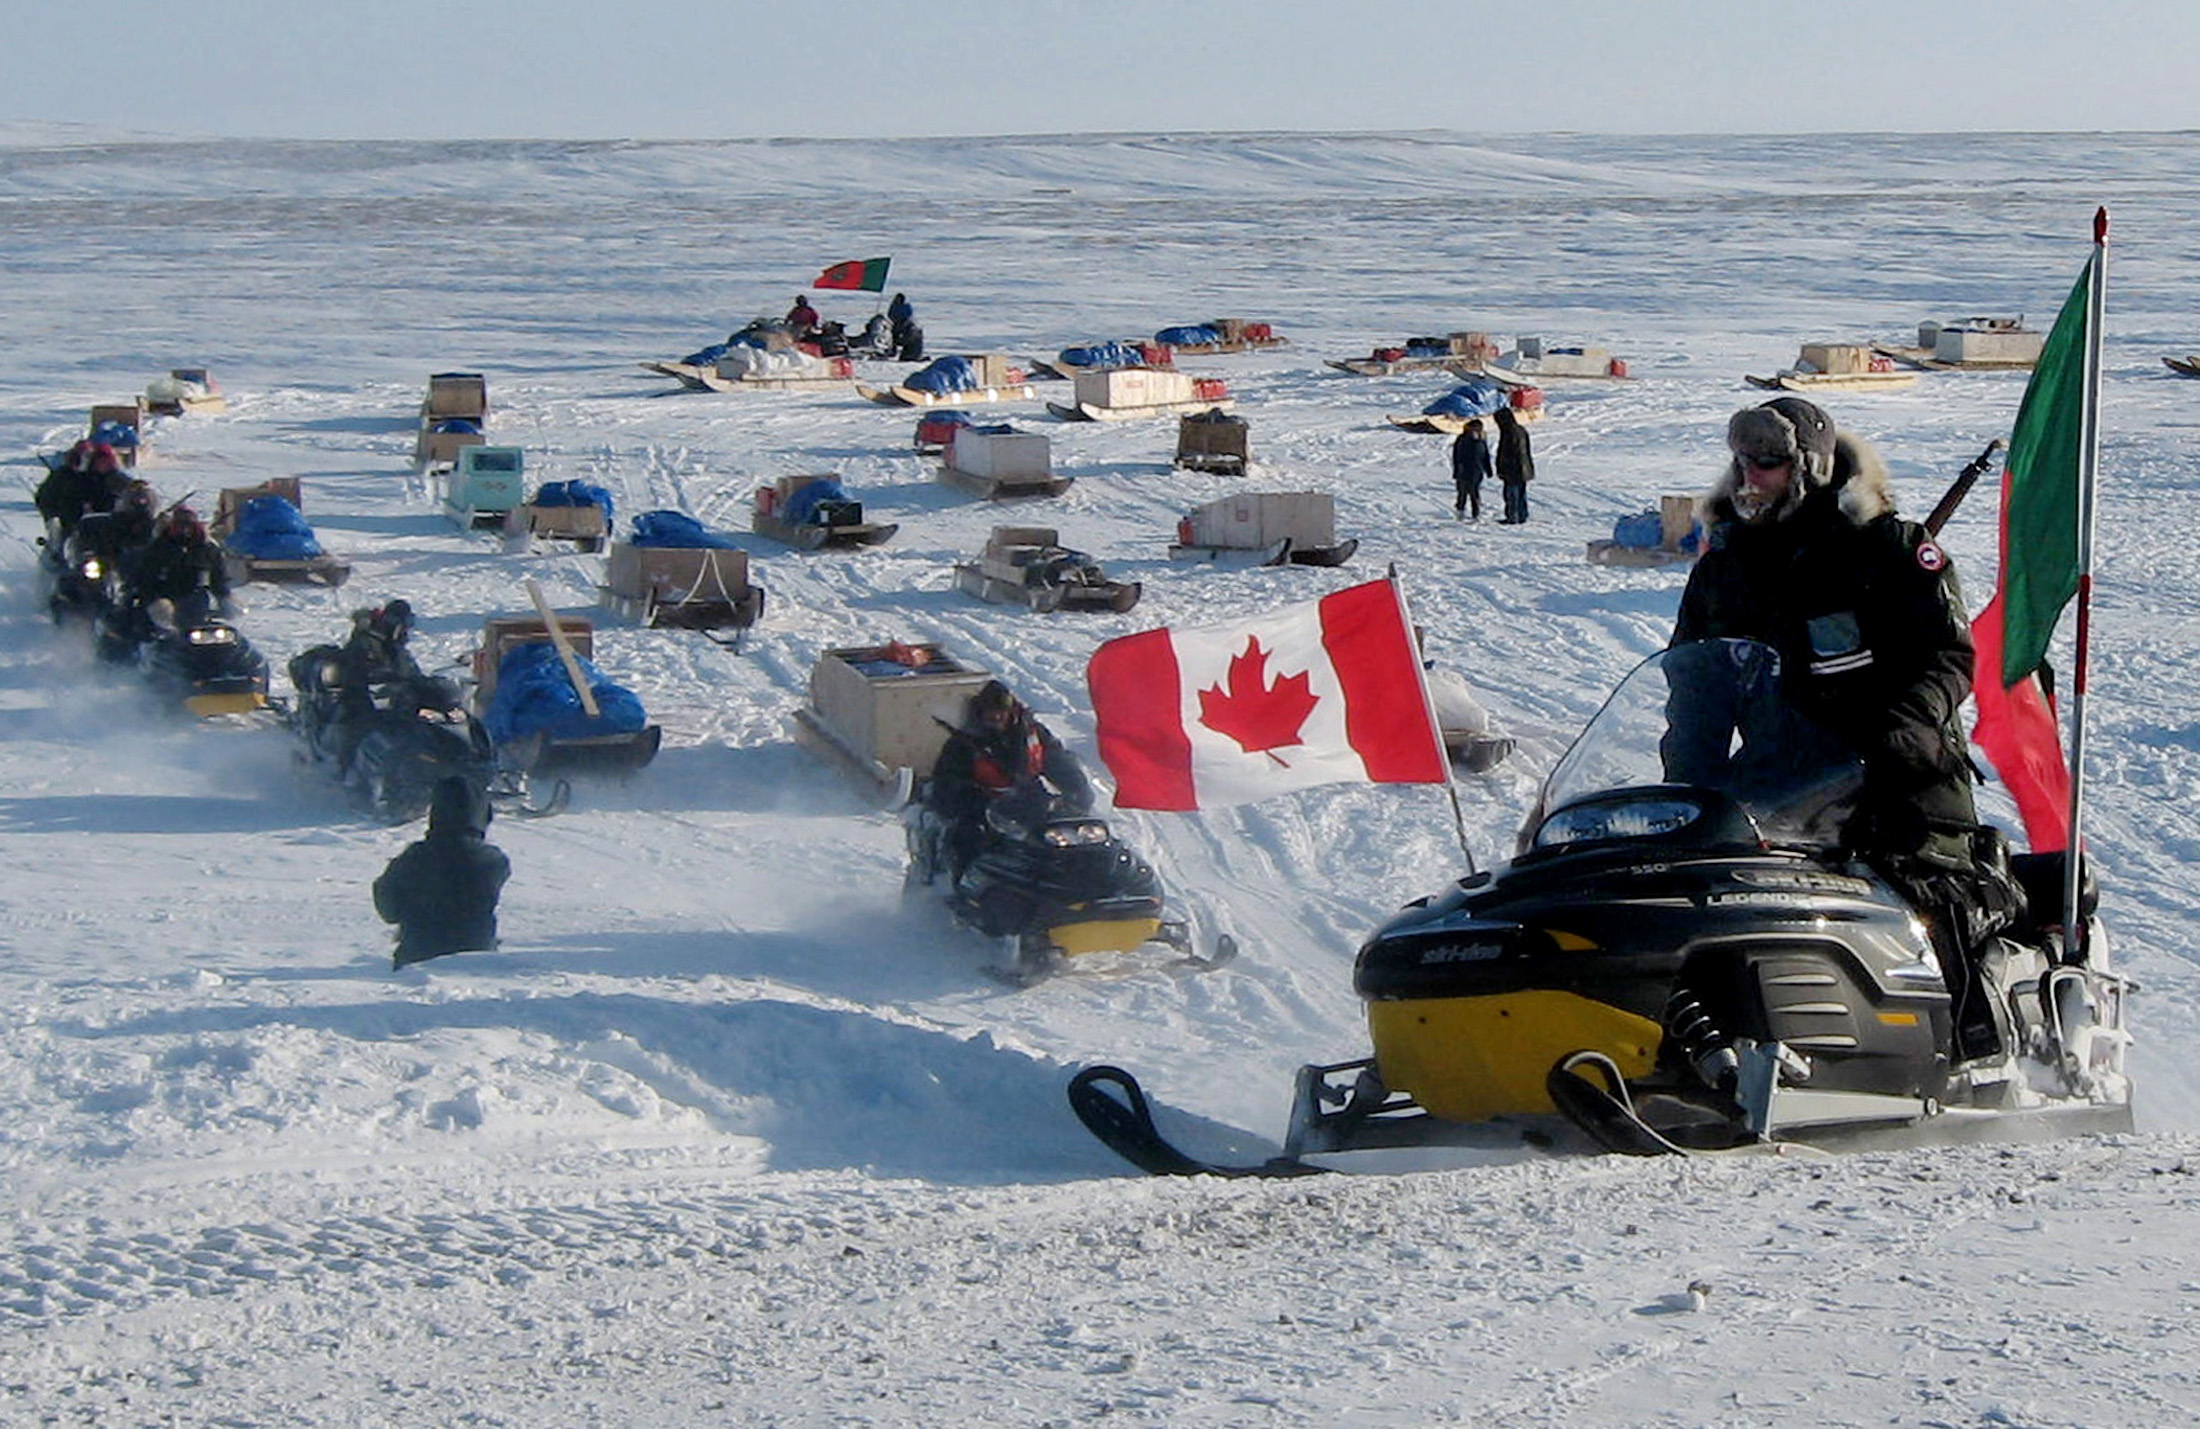 Canadian part-time military volunteers recruited from the aboriginal Inuit people ride their snowmobiles as they leave a meeting off Cornwallis Island, Nunavut April 9, 2006. They had gathered on the frozen sea off Cornwallis Island at the end of a two-week patrol designed to boost Canadian sovereignty in the remote and resource-rich High Arctic. After decades of virtually ignoring its remote, frozen Arctic lands, Canada is belatedly trying to assert its sovereignty over a gigantic region rich in mineral resources. The 1.3 million square miles (3.4 million sq km) of ice, rock and sea comprise 40 percent of Canada's land mass yet forces stationed there are minuscule -- 190 soldiers, 1700 part-time Inuit volunteers and four small, slow aircraft.  To match feature Canada-Sovereignty   Photo taken April 9, 2006.      REUTERS/David Ljunggren - GM1DSLAEZHAA